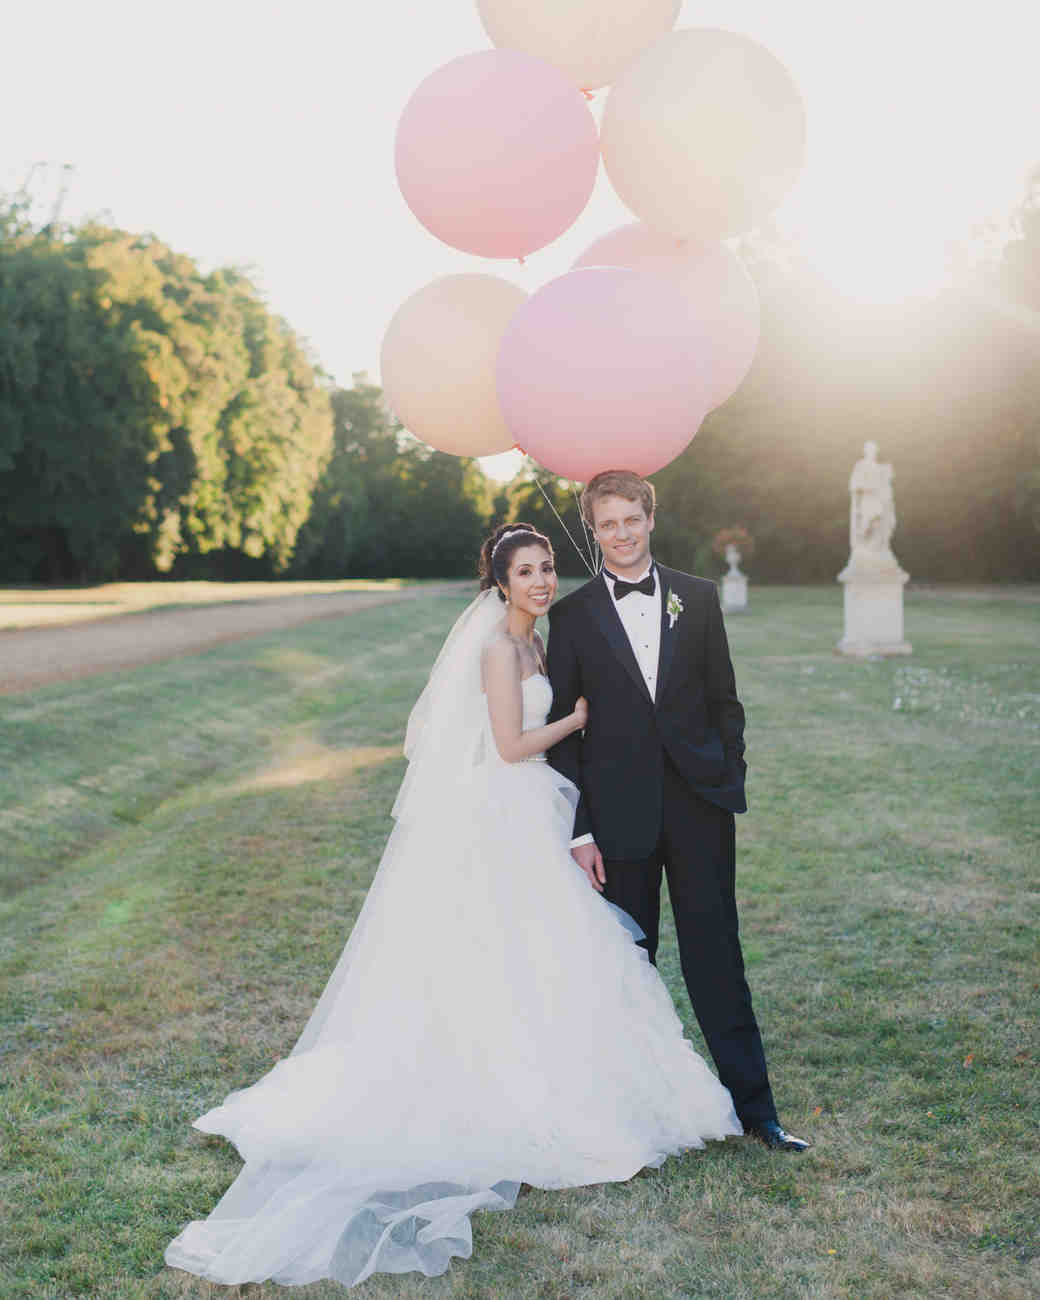 Bride and Groom with Big Balloons